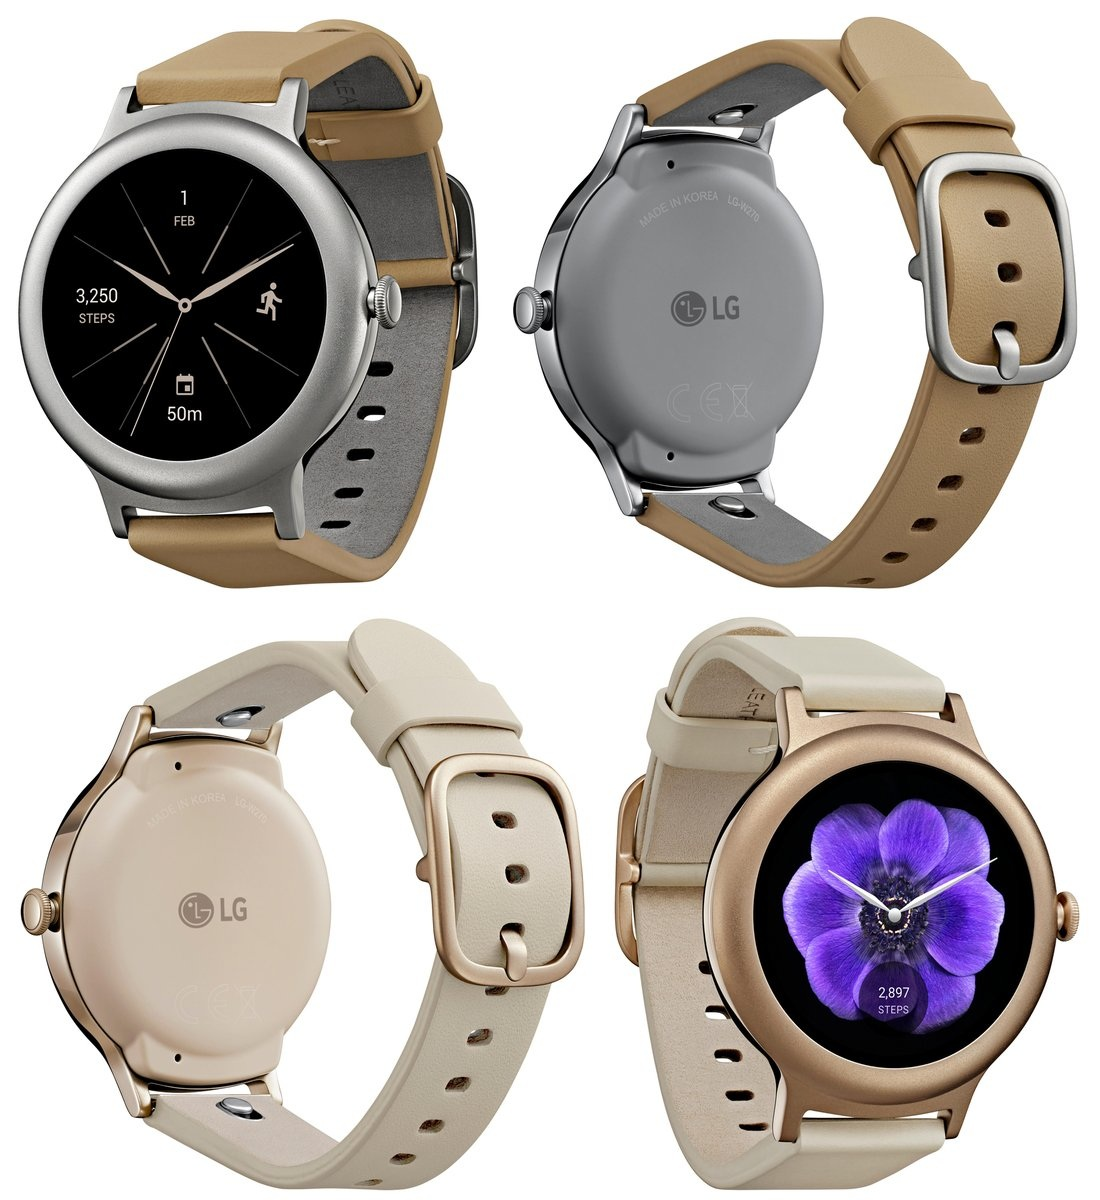 clearer-images-lg-lg-watch-style-leaked-online